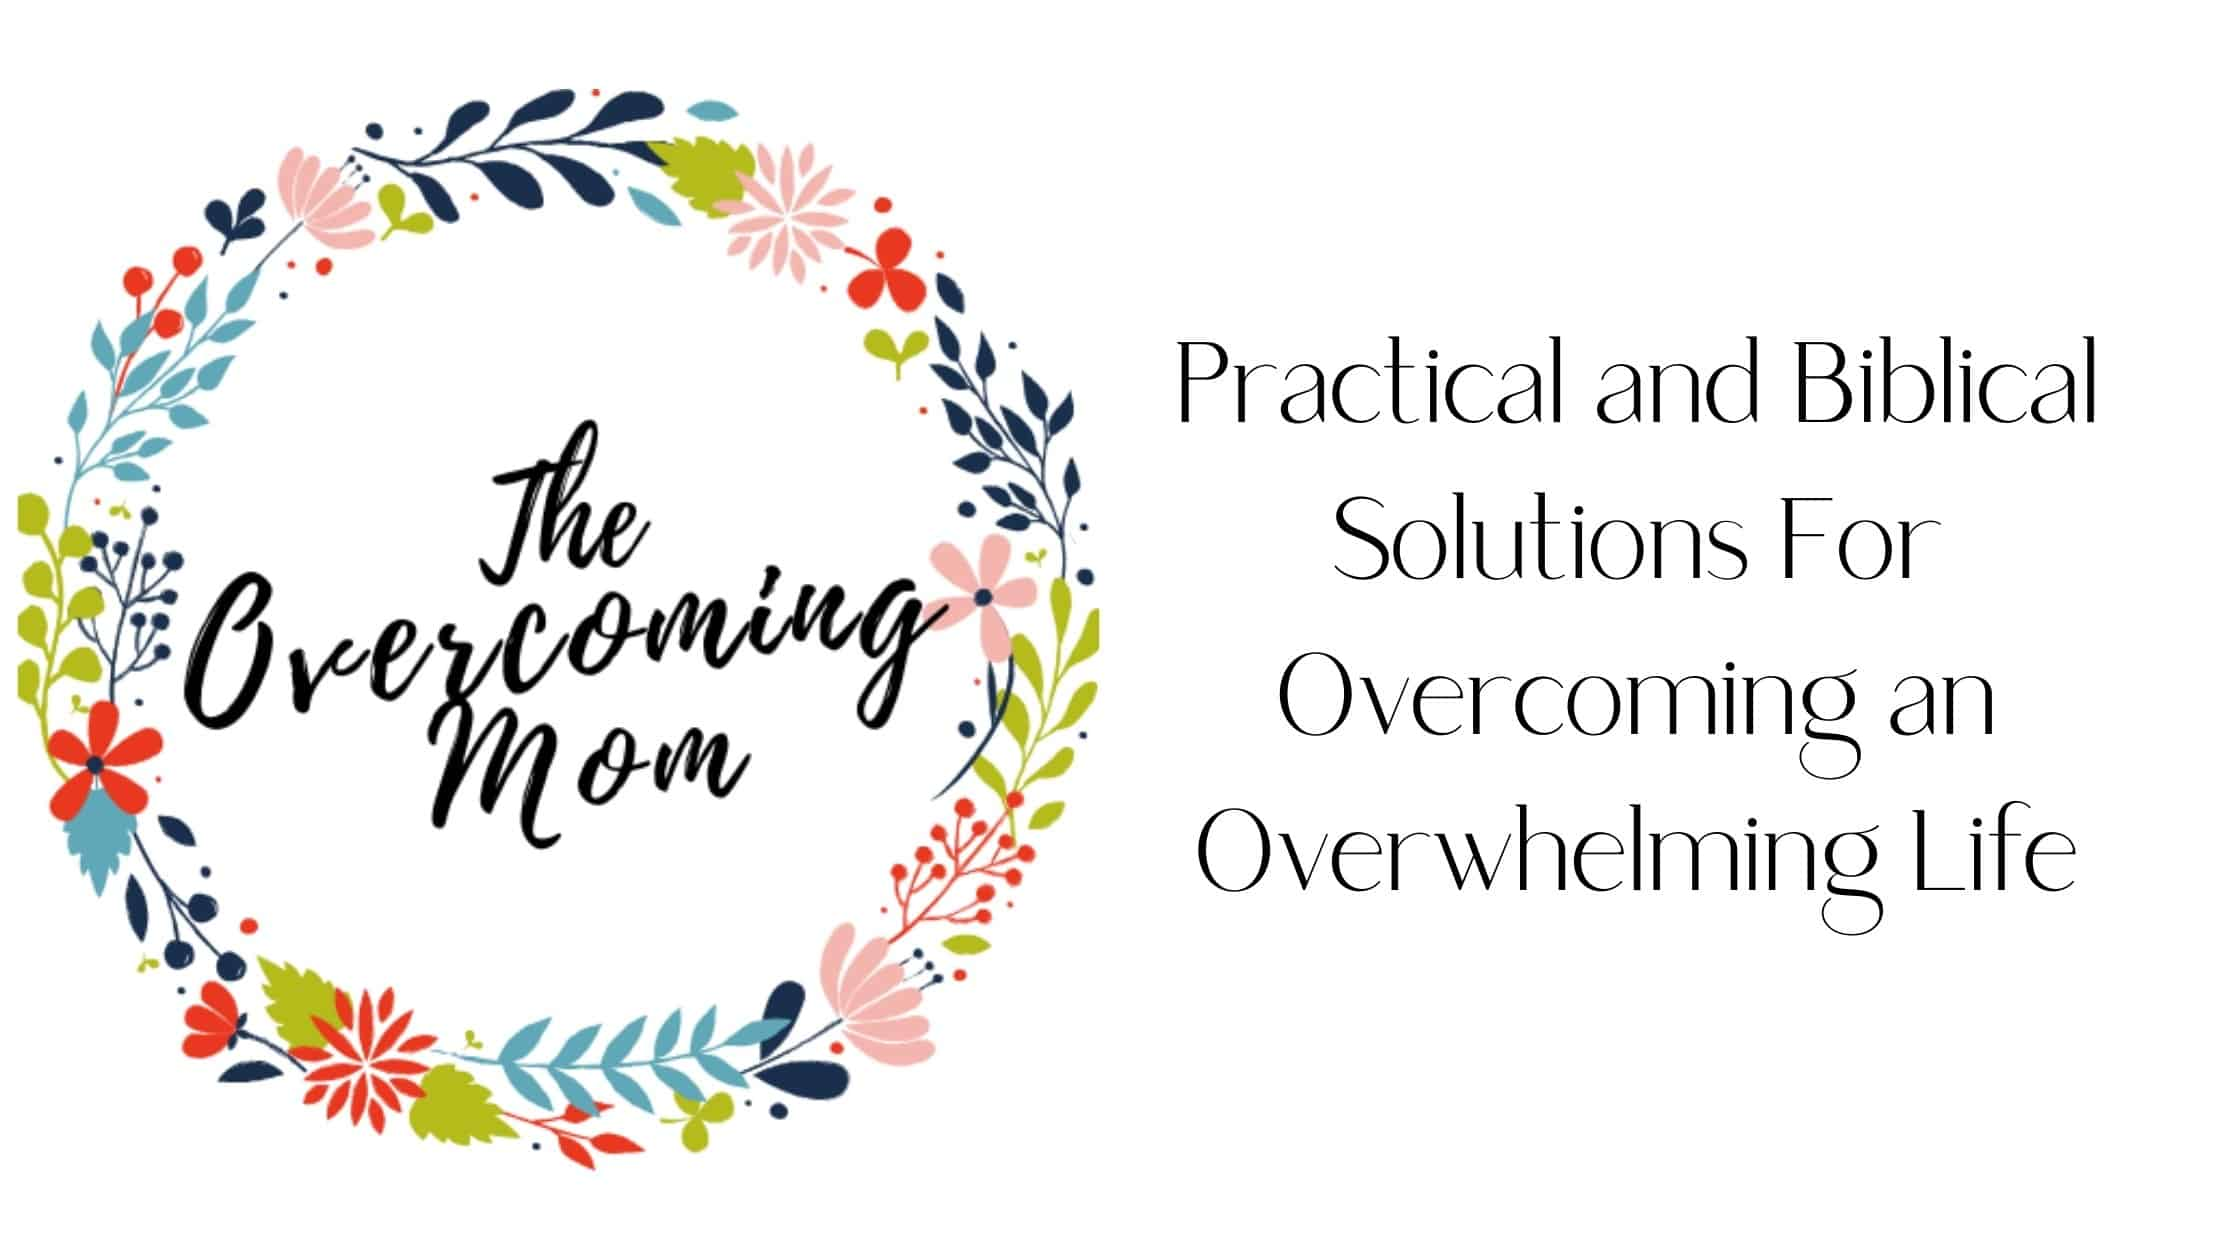 The Overcoming Mom: Practical and Biblical Solutions For Overcoming an Overwhelming Life